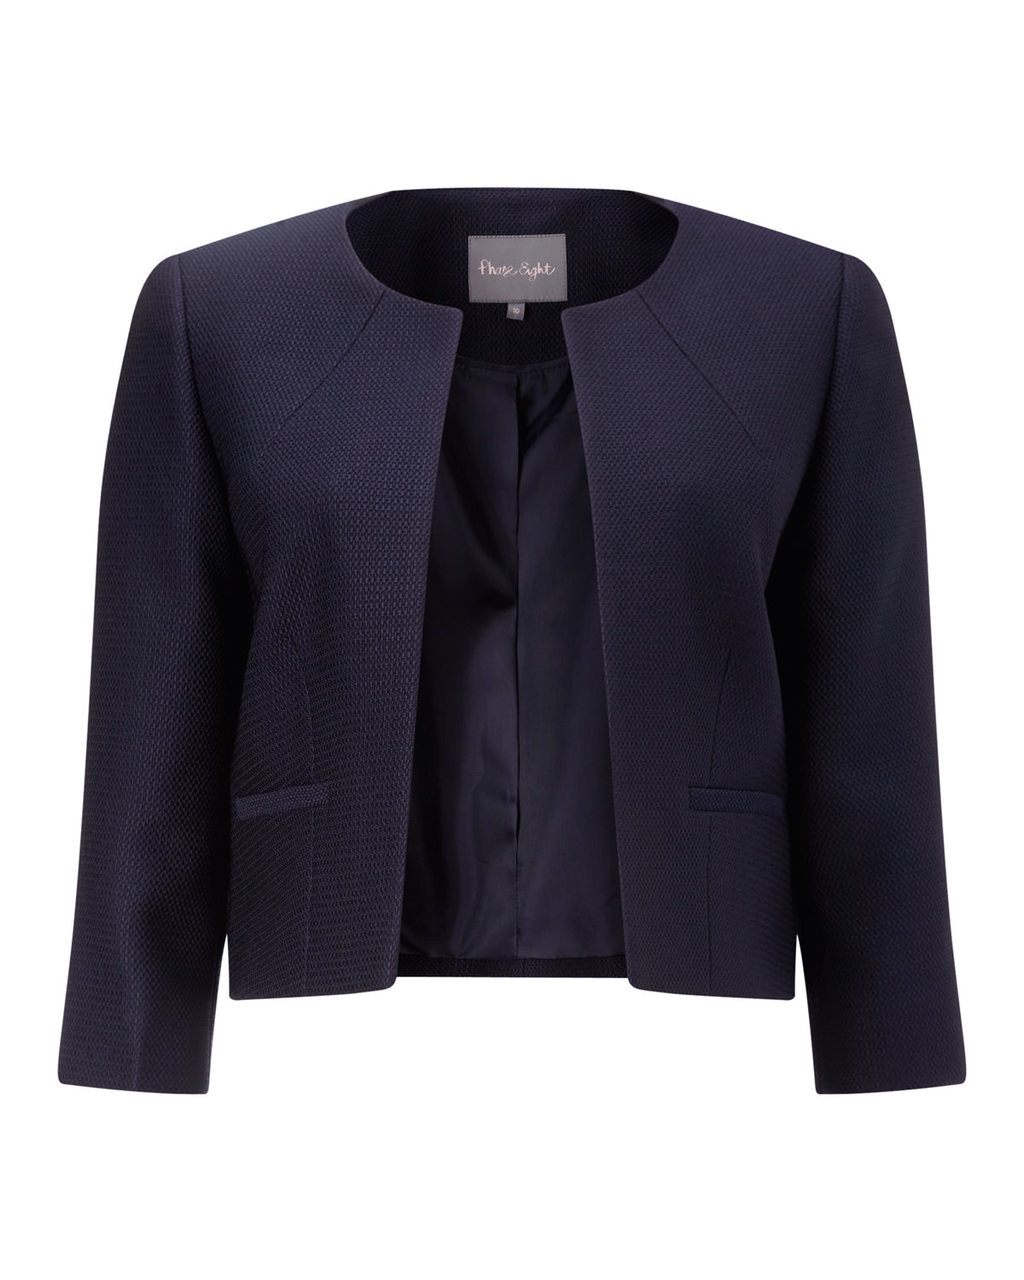 Valetta Jacket - pattern: plain; collar: round collar/collarless; style: boxy; predominant colour: navy; occasions: work; length: standard; fit: straight cut (boxy); fibres: polyester/polyamide - 100%; sleeve length: 3/4 length; sleeve style: standard; collar break: high; pattern type: fabric; texture group: woven light midweight; season: a/w 2015